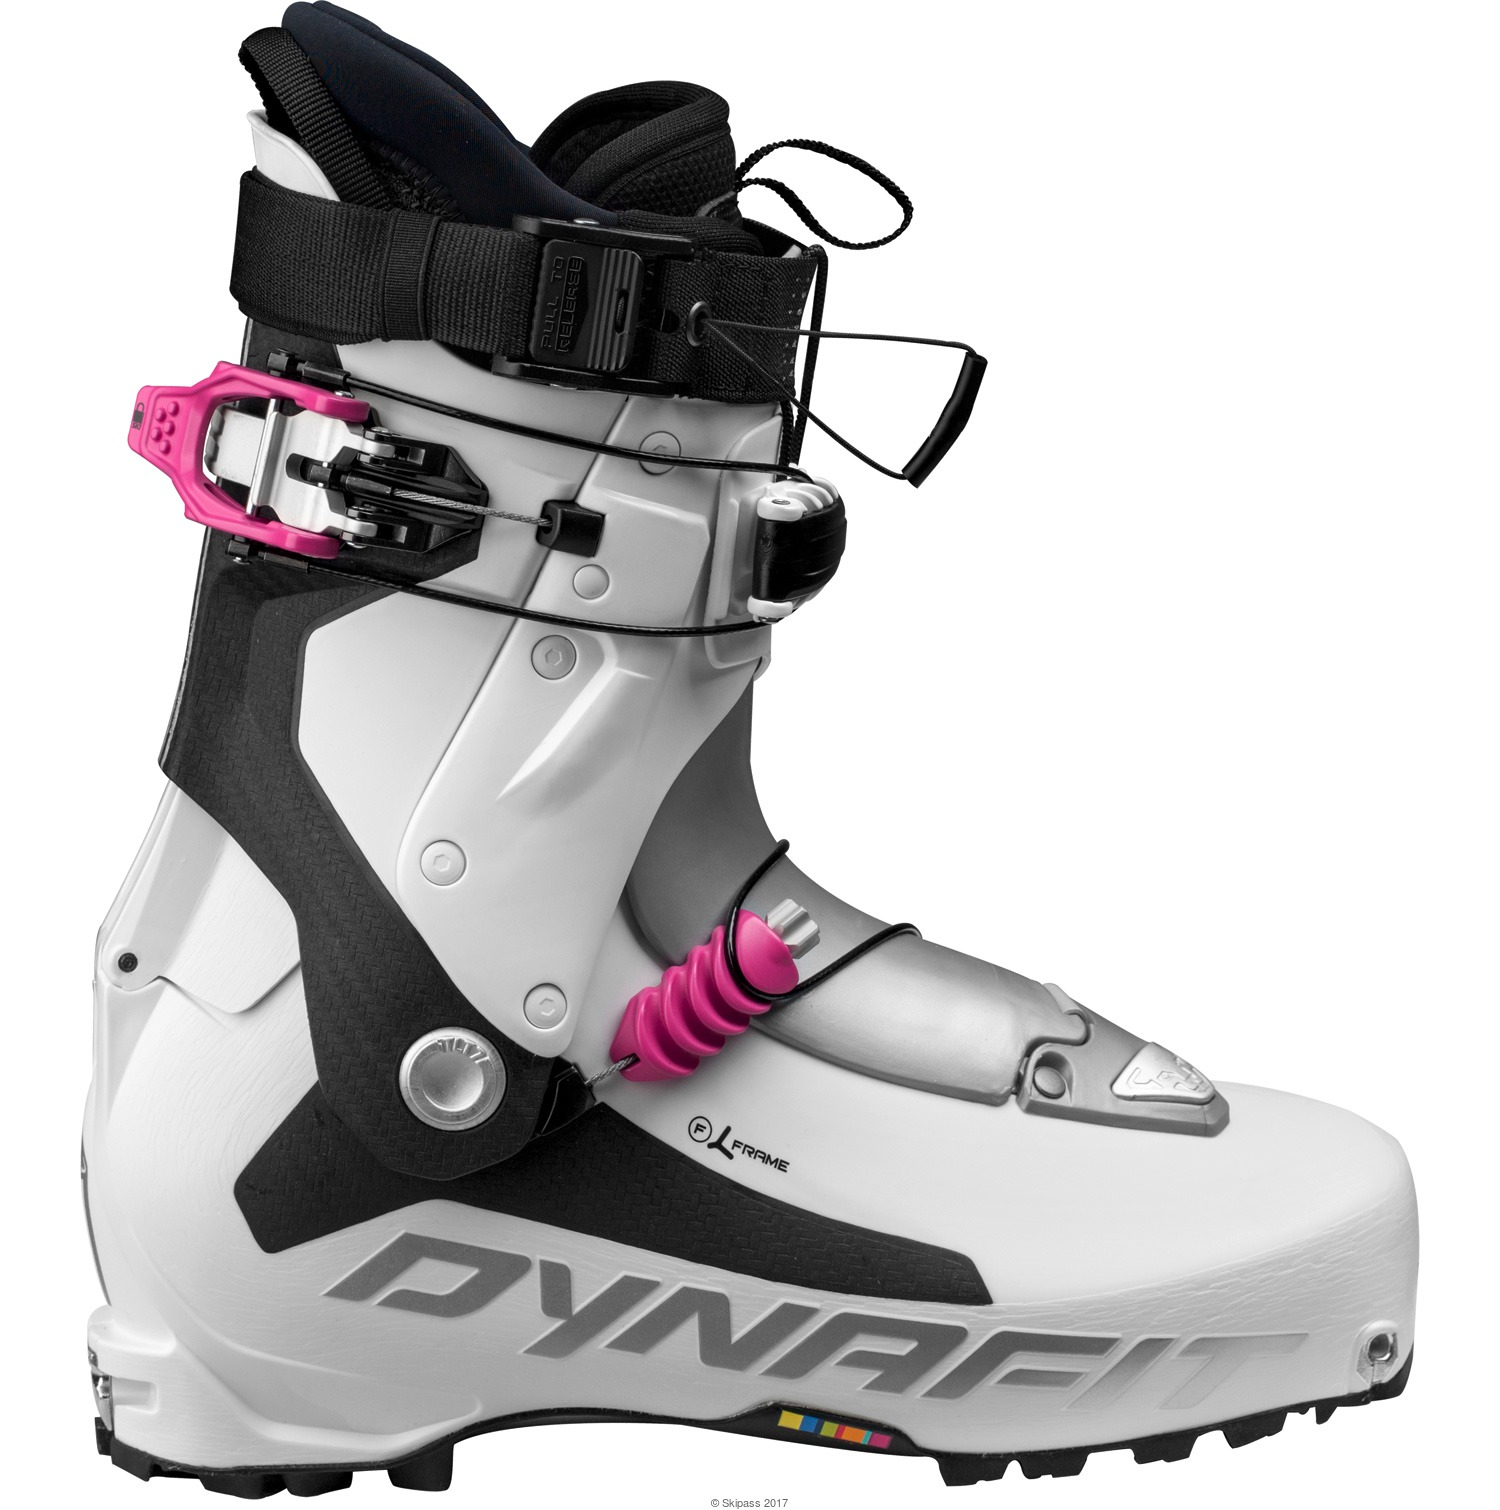 a6fb24ae6ef Dynafit Chaussures TLT7 Expedition CL WS White-Fuschia - Chaussures Ski  GH8HUA1Z - destrainspourtous.fr